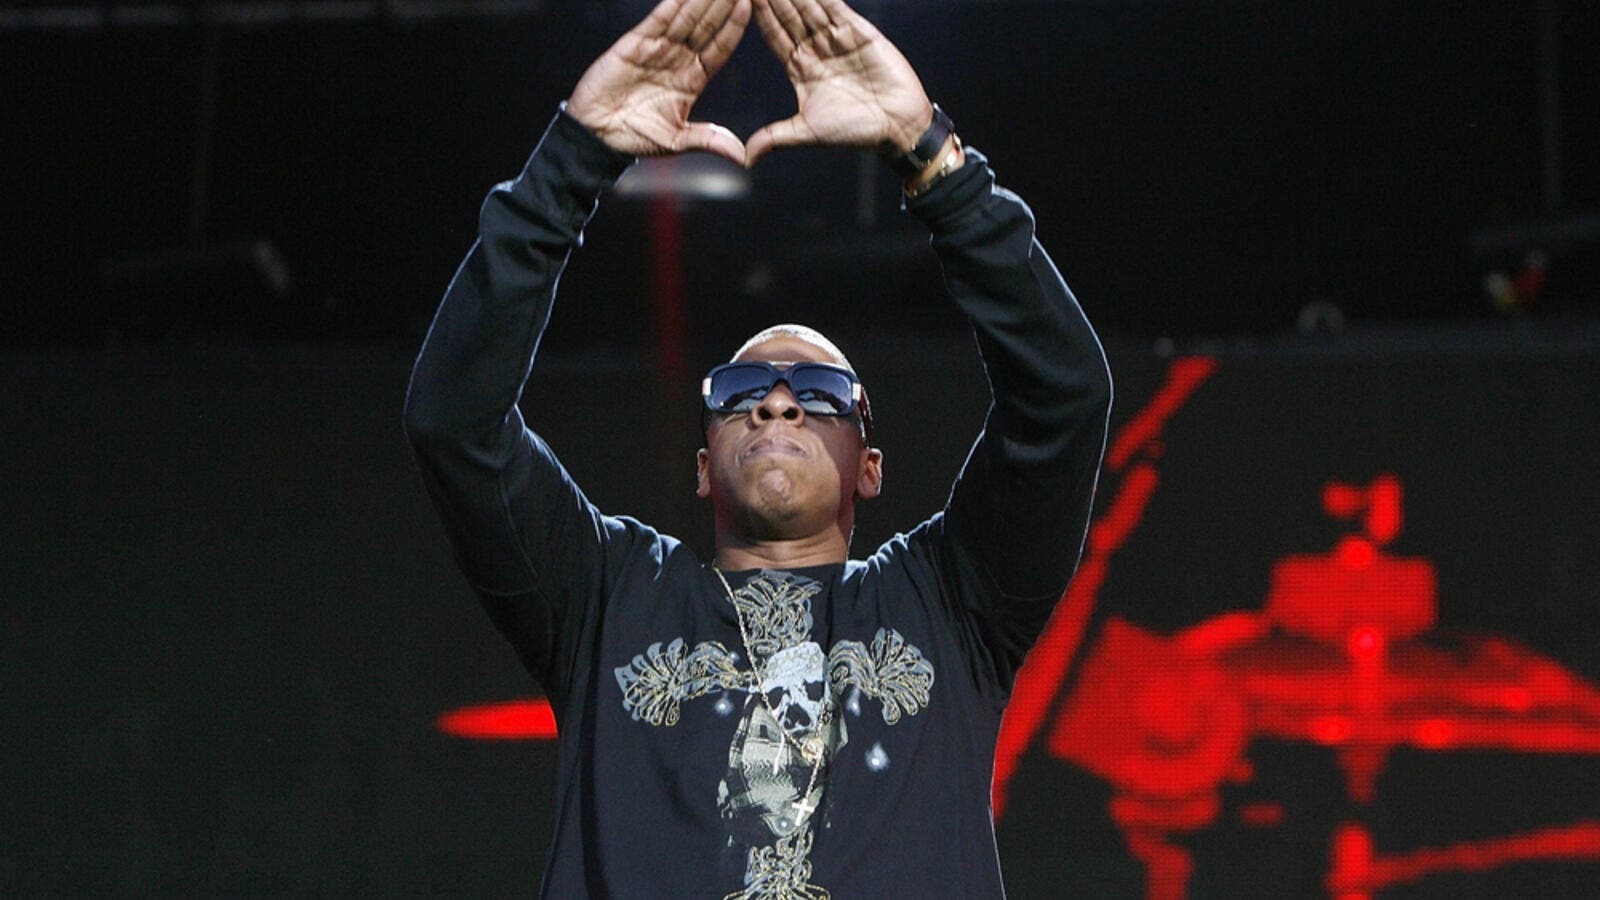 Jay-Z was recently named by Forbes magazine as hip hop's first billionaire.